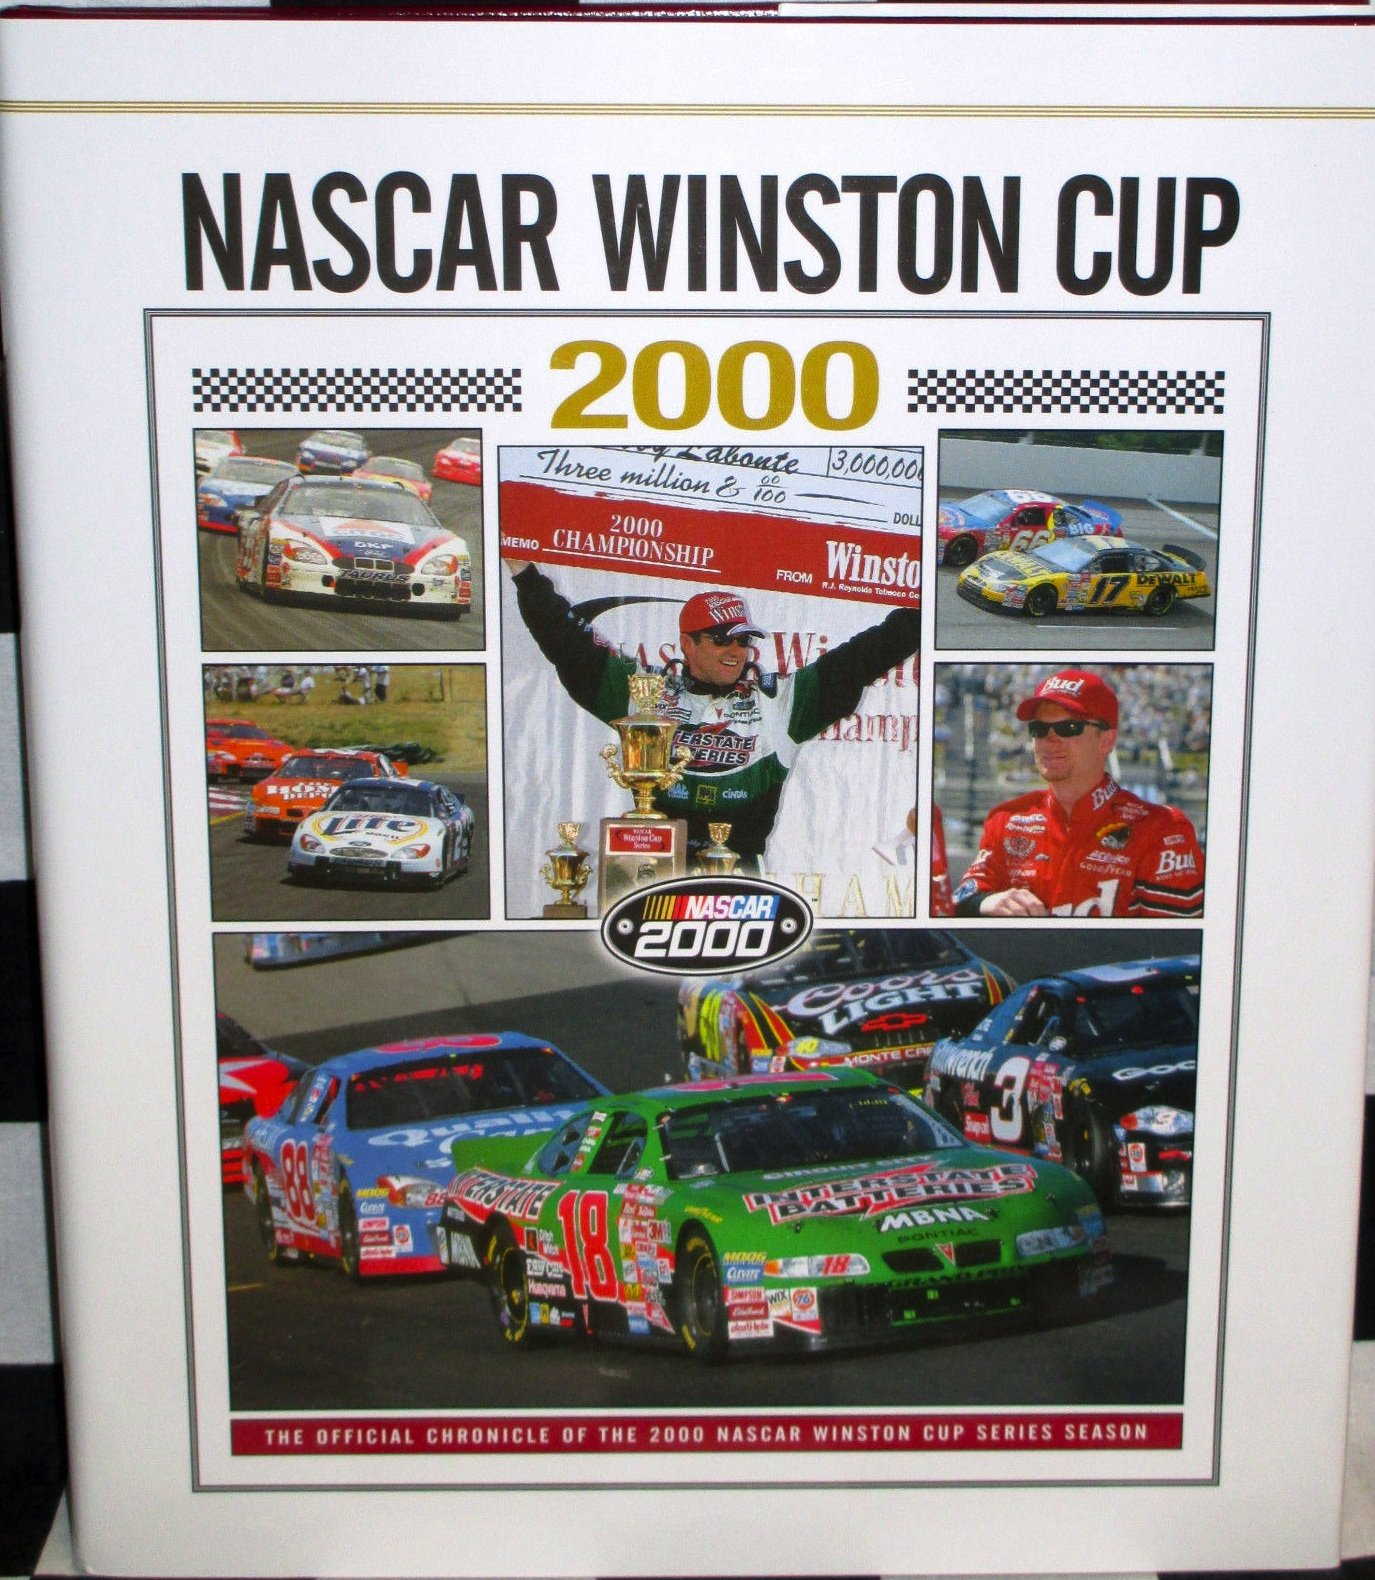 NASCAR Winston Cup 2000: The Official Chronicle of the 2000 NASCAR Winston Cup Series Season